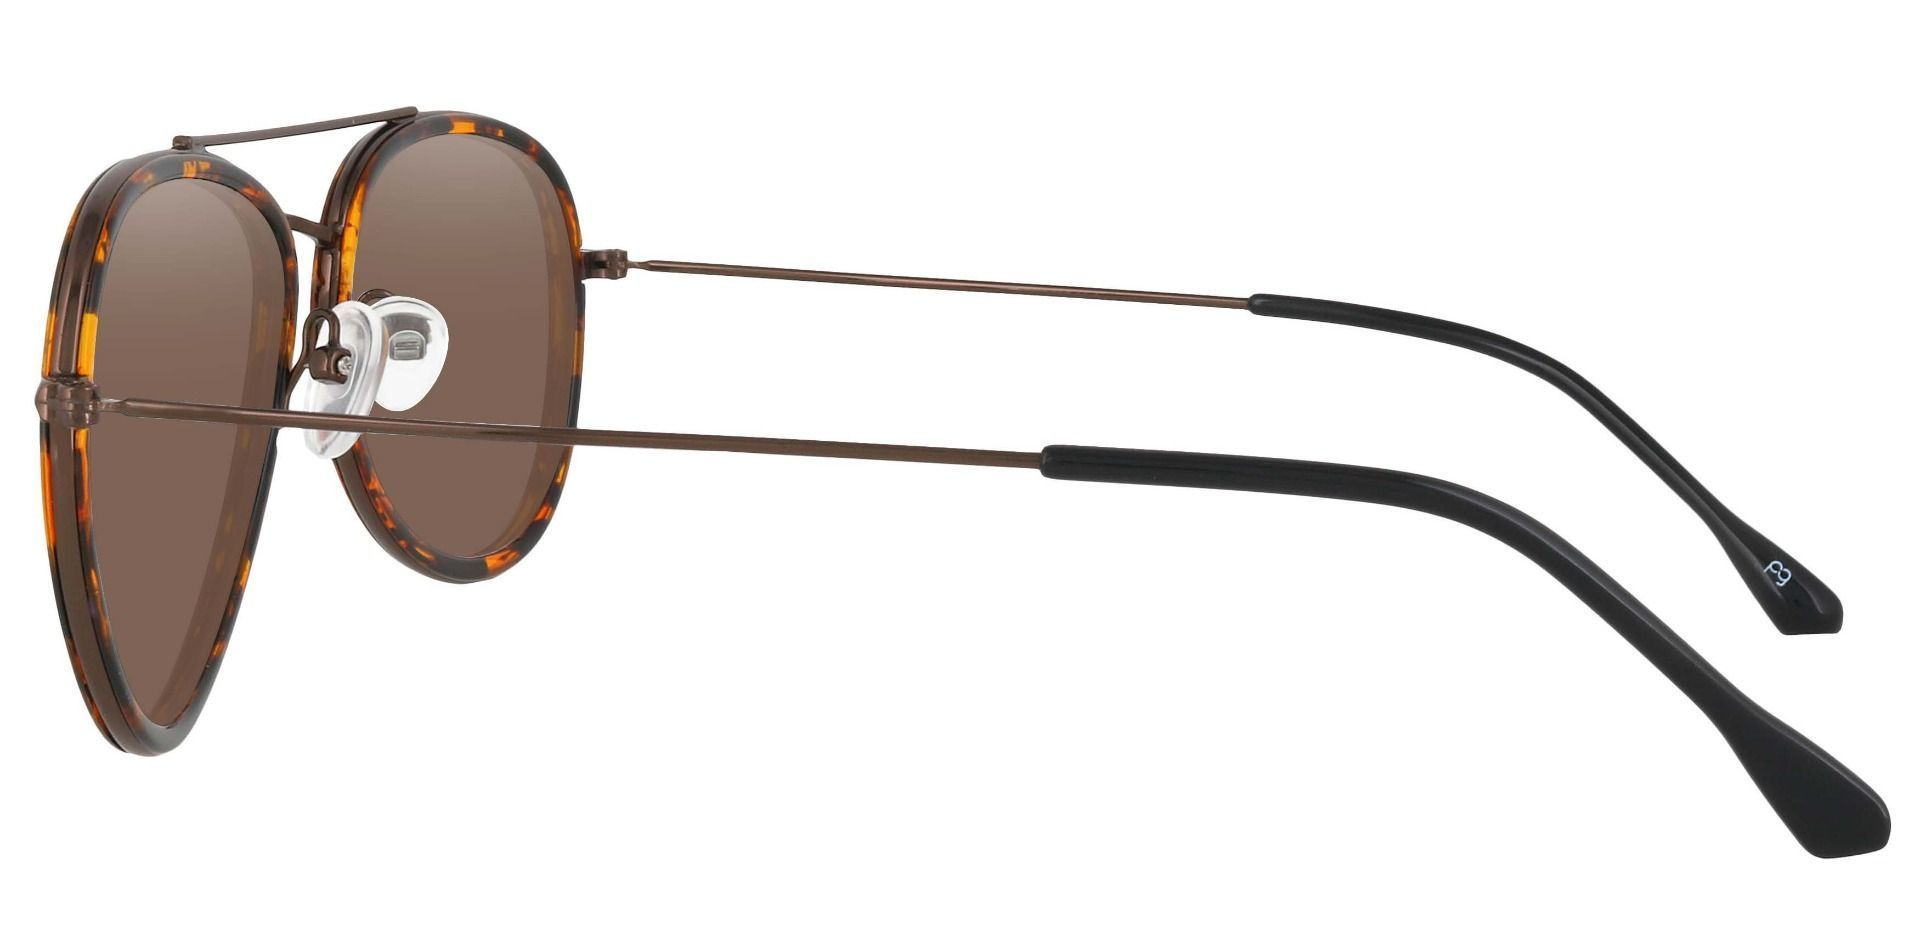 The King Aviator Single Vision Sunglasses - Tortoise Frame With Brown Lenses